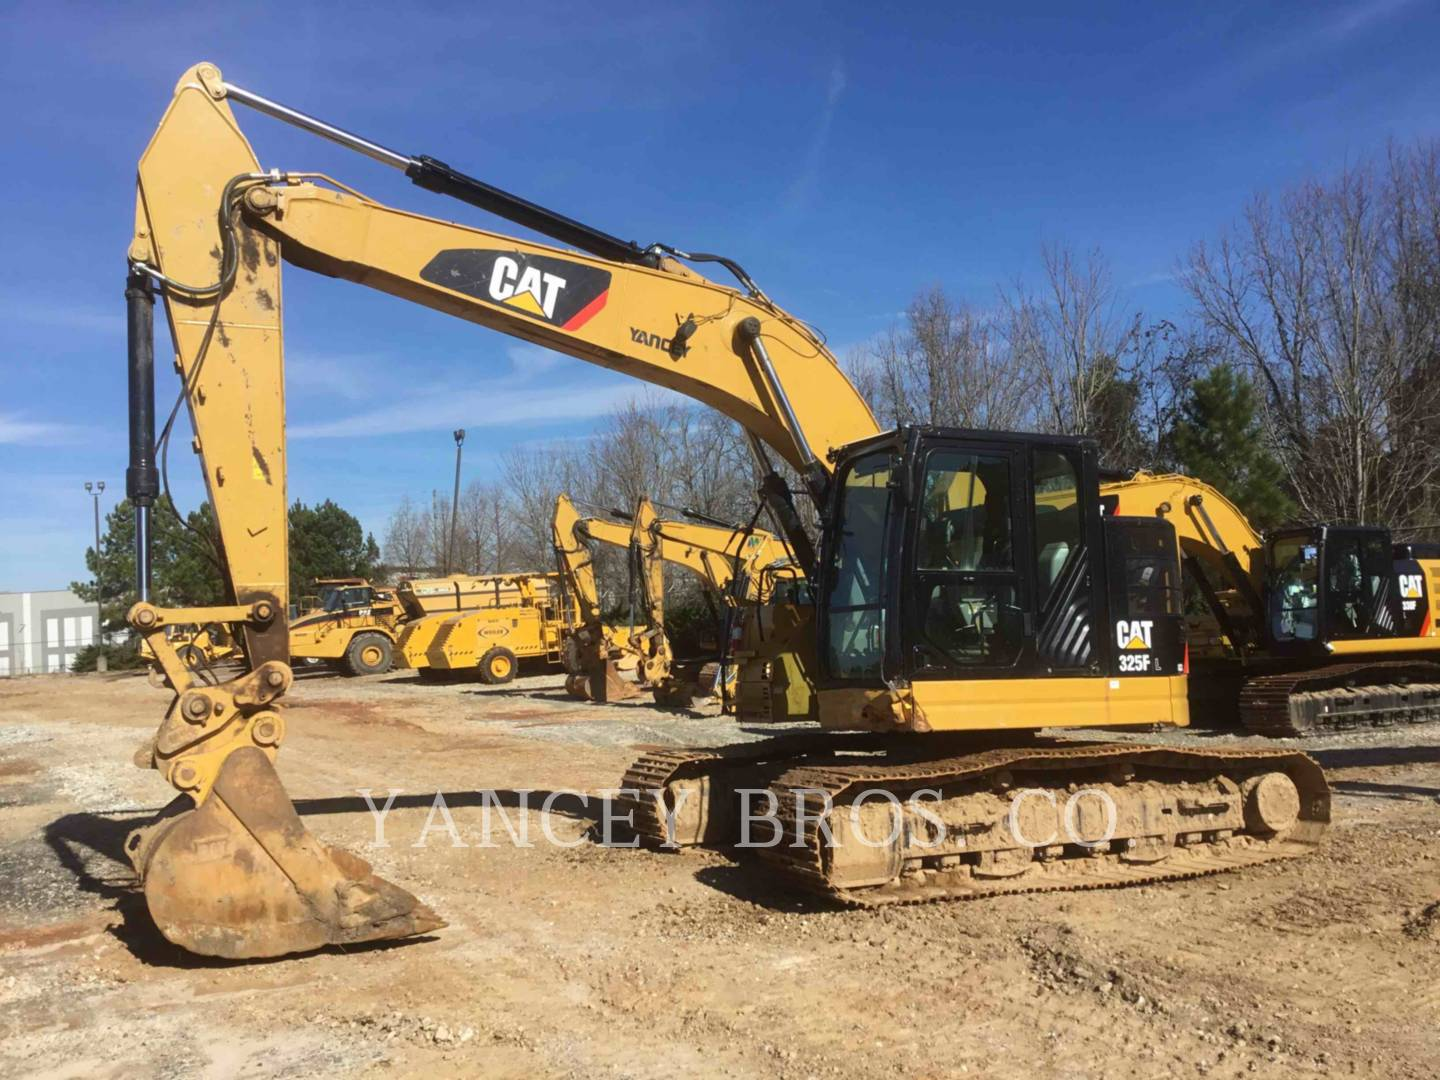 2016 - CATERPILLAR - 325F CR